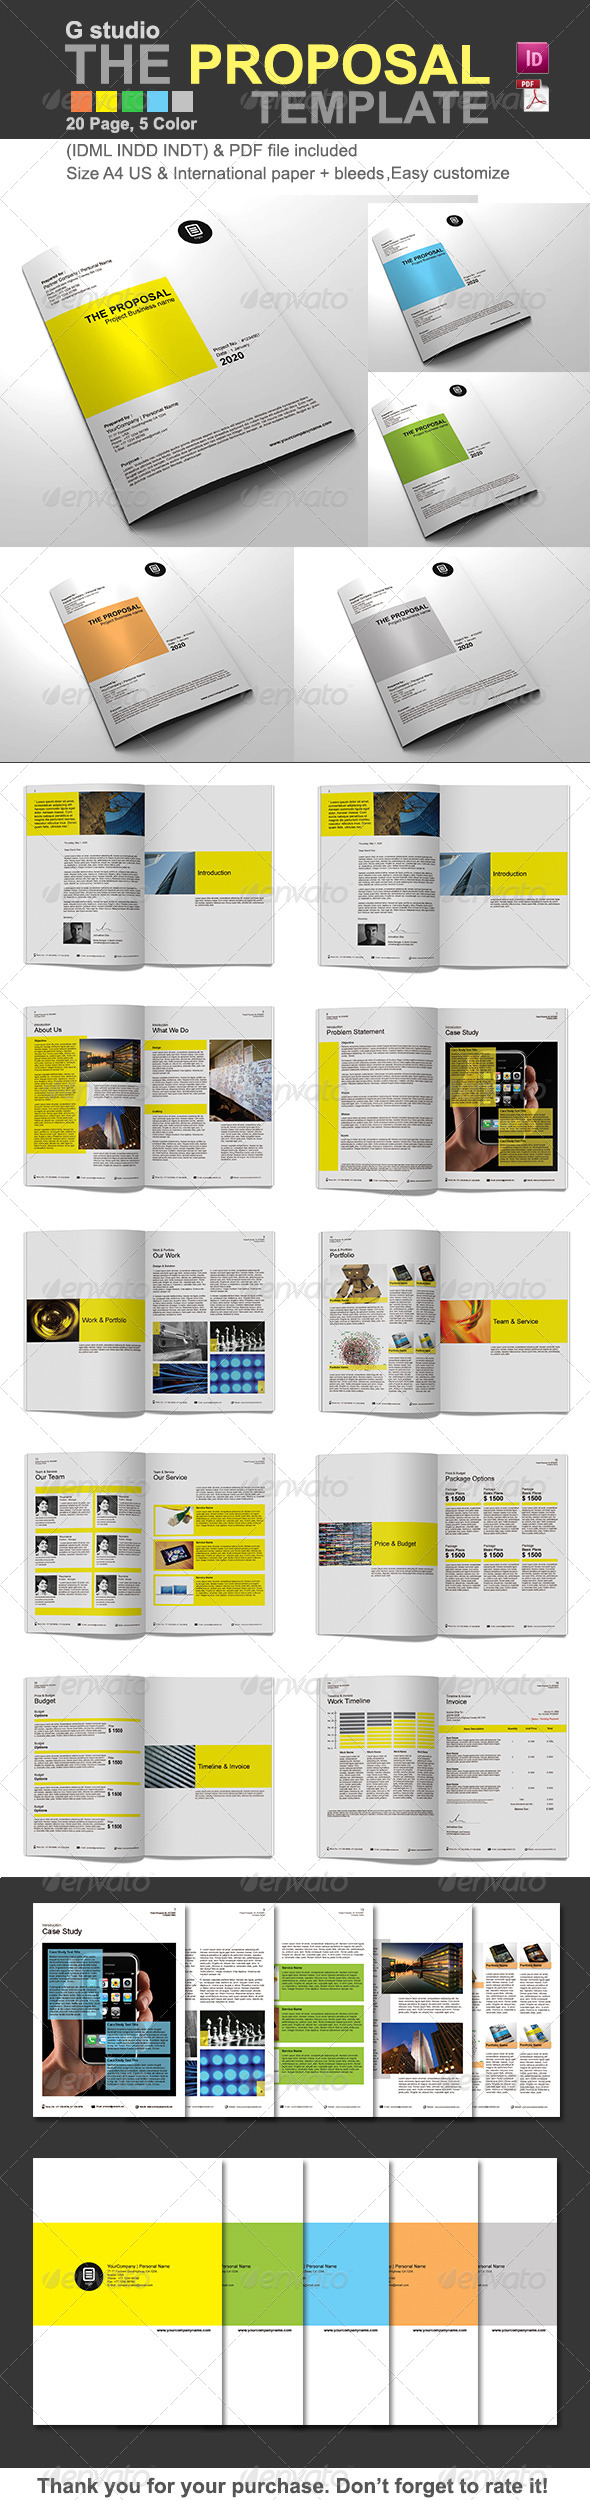 GraphicRiver Gstudio The Proposal Template 4519732